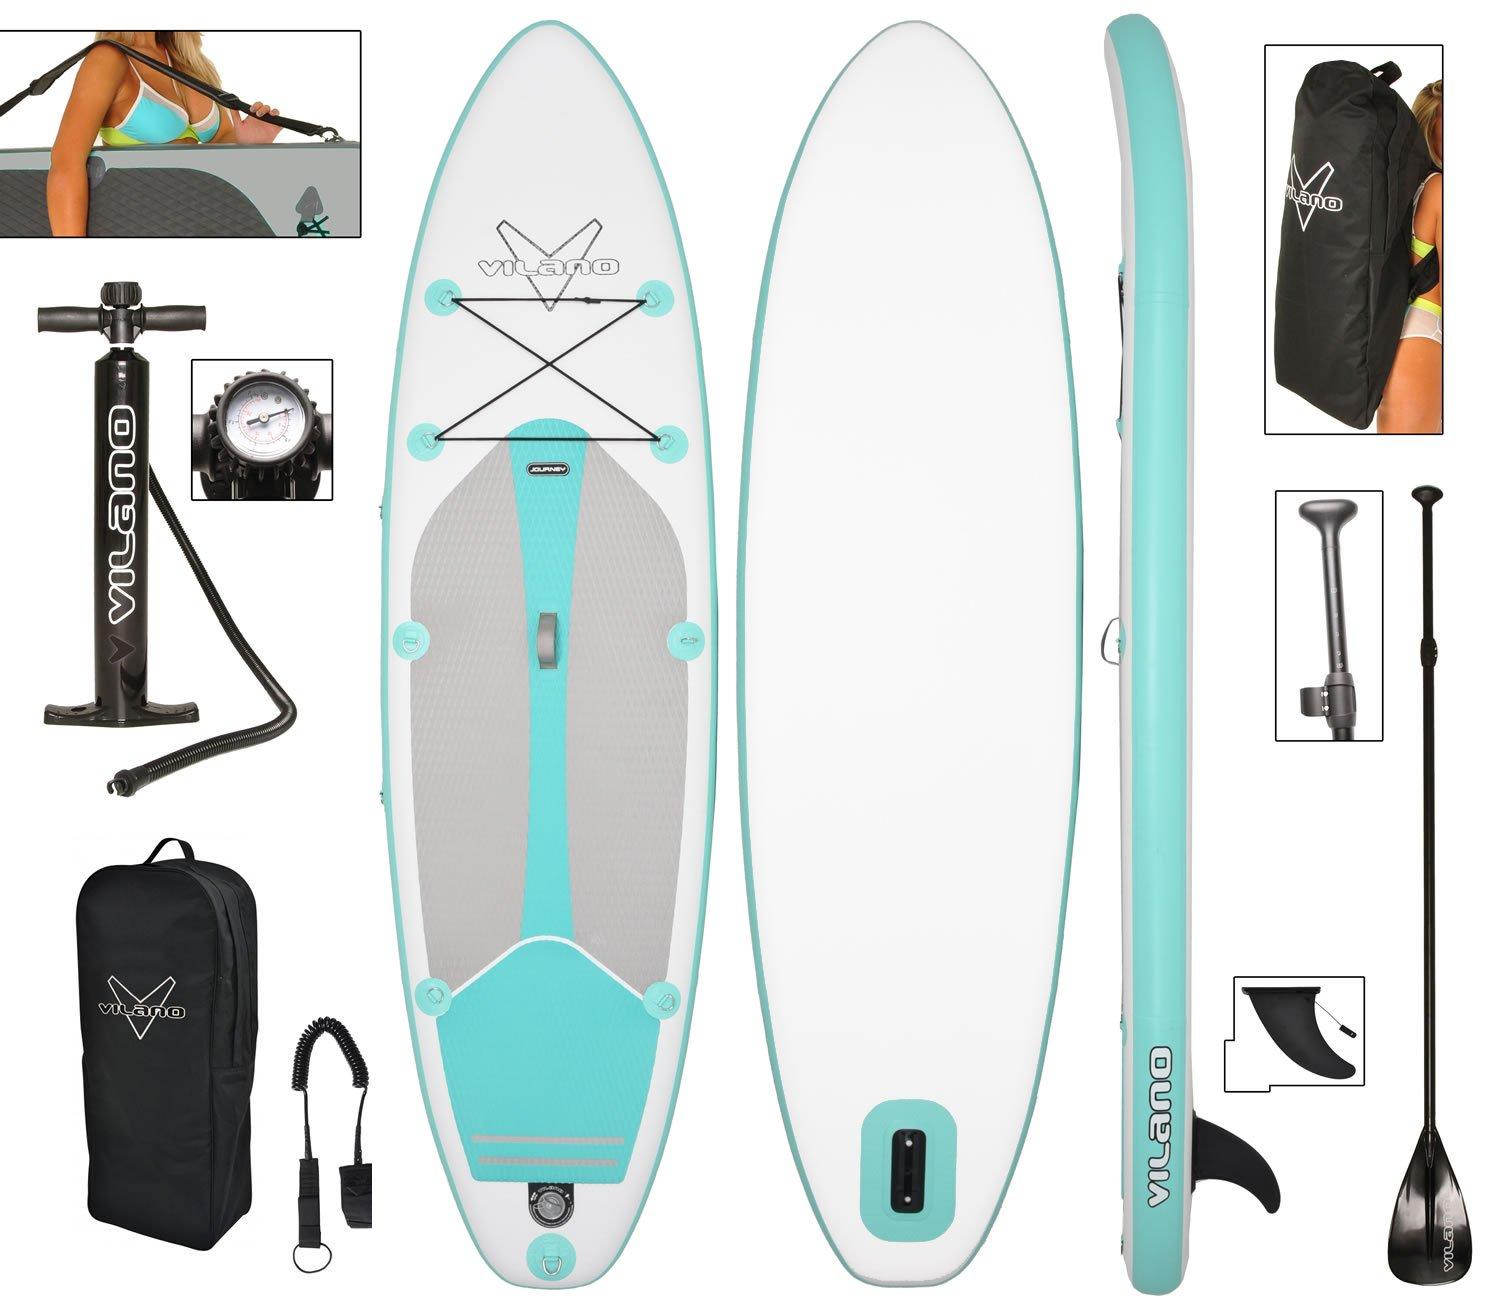 Vilano Journey Inflatable SUP Stand up Paddle Board Kit by Vilano